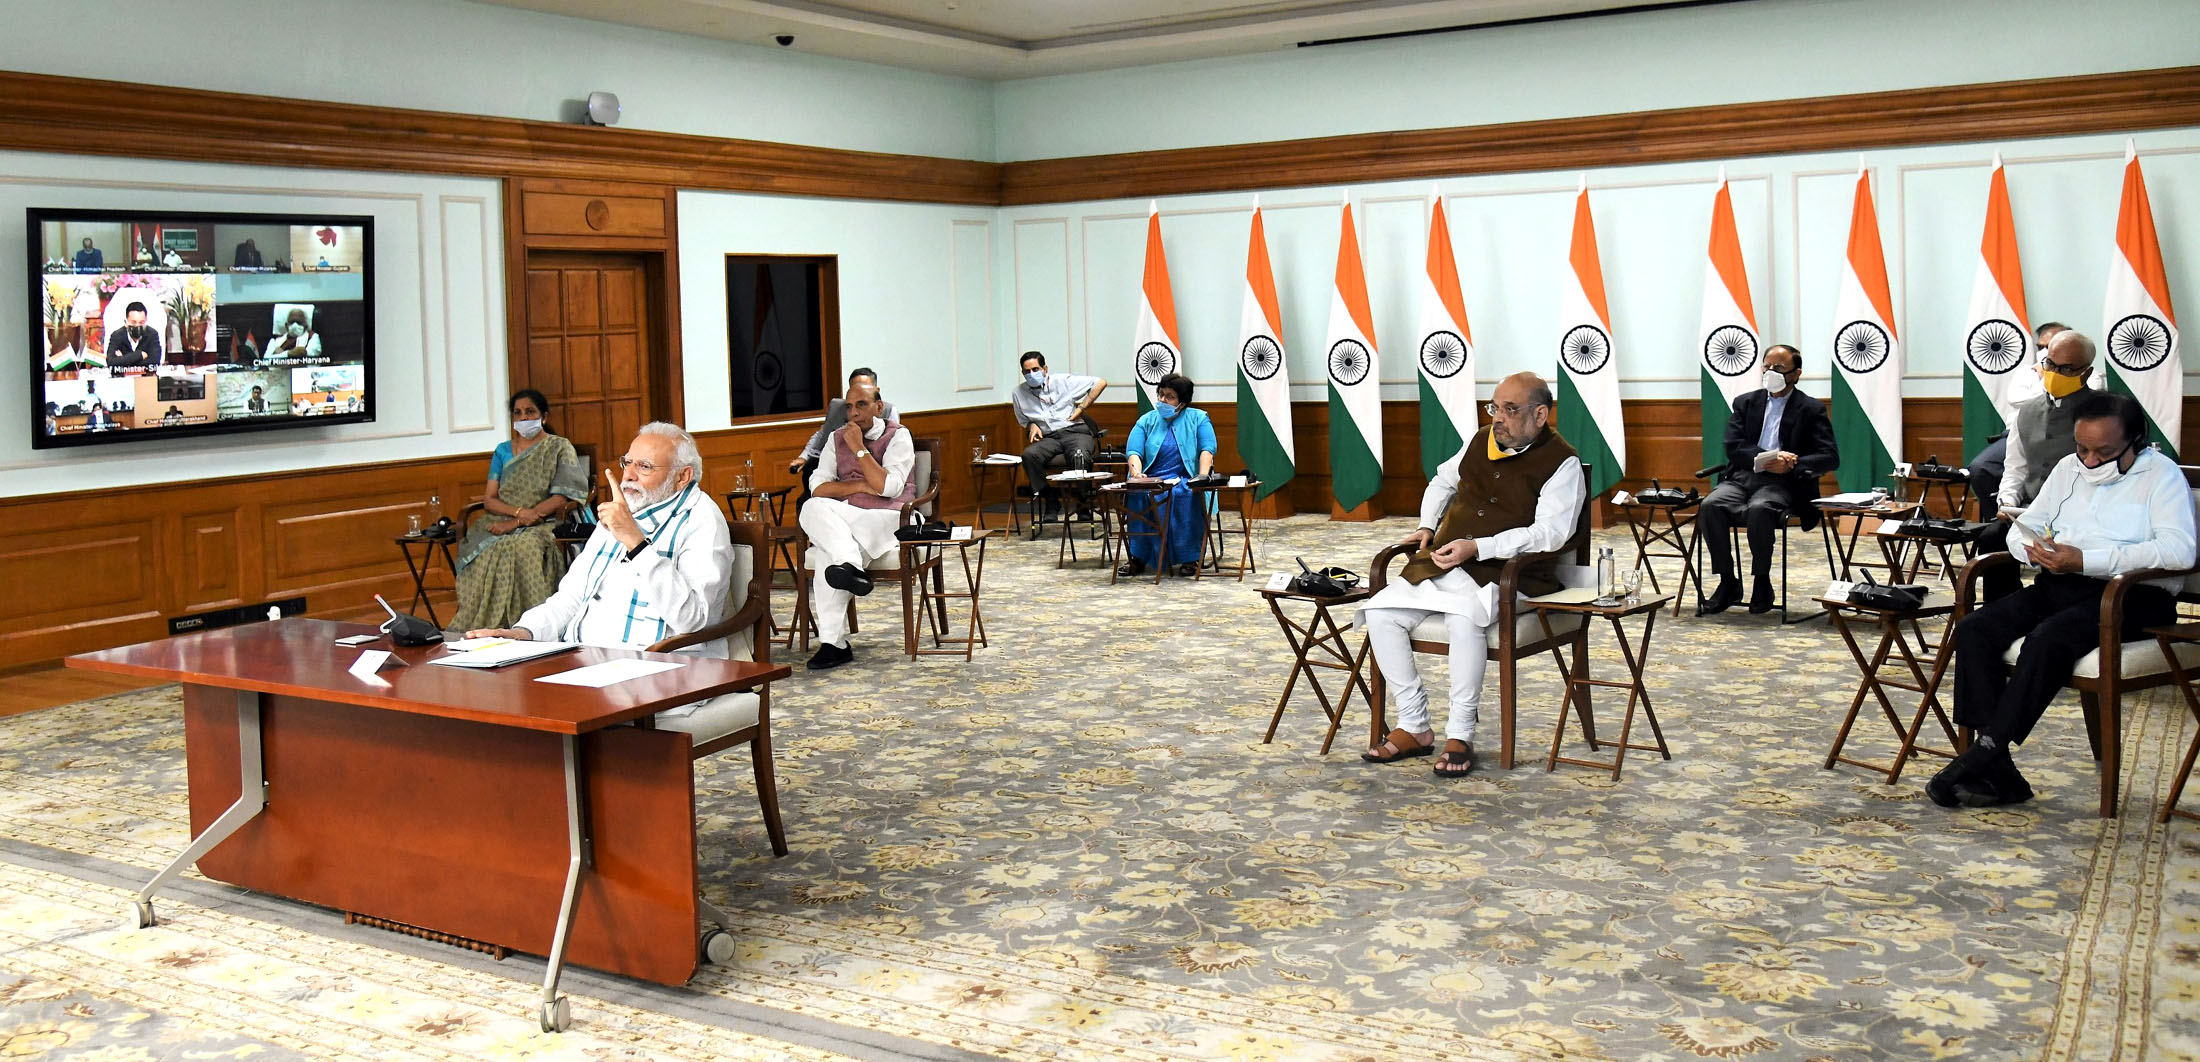 The Prime Minister, Shri Narendra Modi interacting with the Chief Ministers of states via video conferencing to discuss the emerging situation and plan ahead for tackling the COVID-19 pandemic, in New Delhi on April 27, 2020.